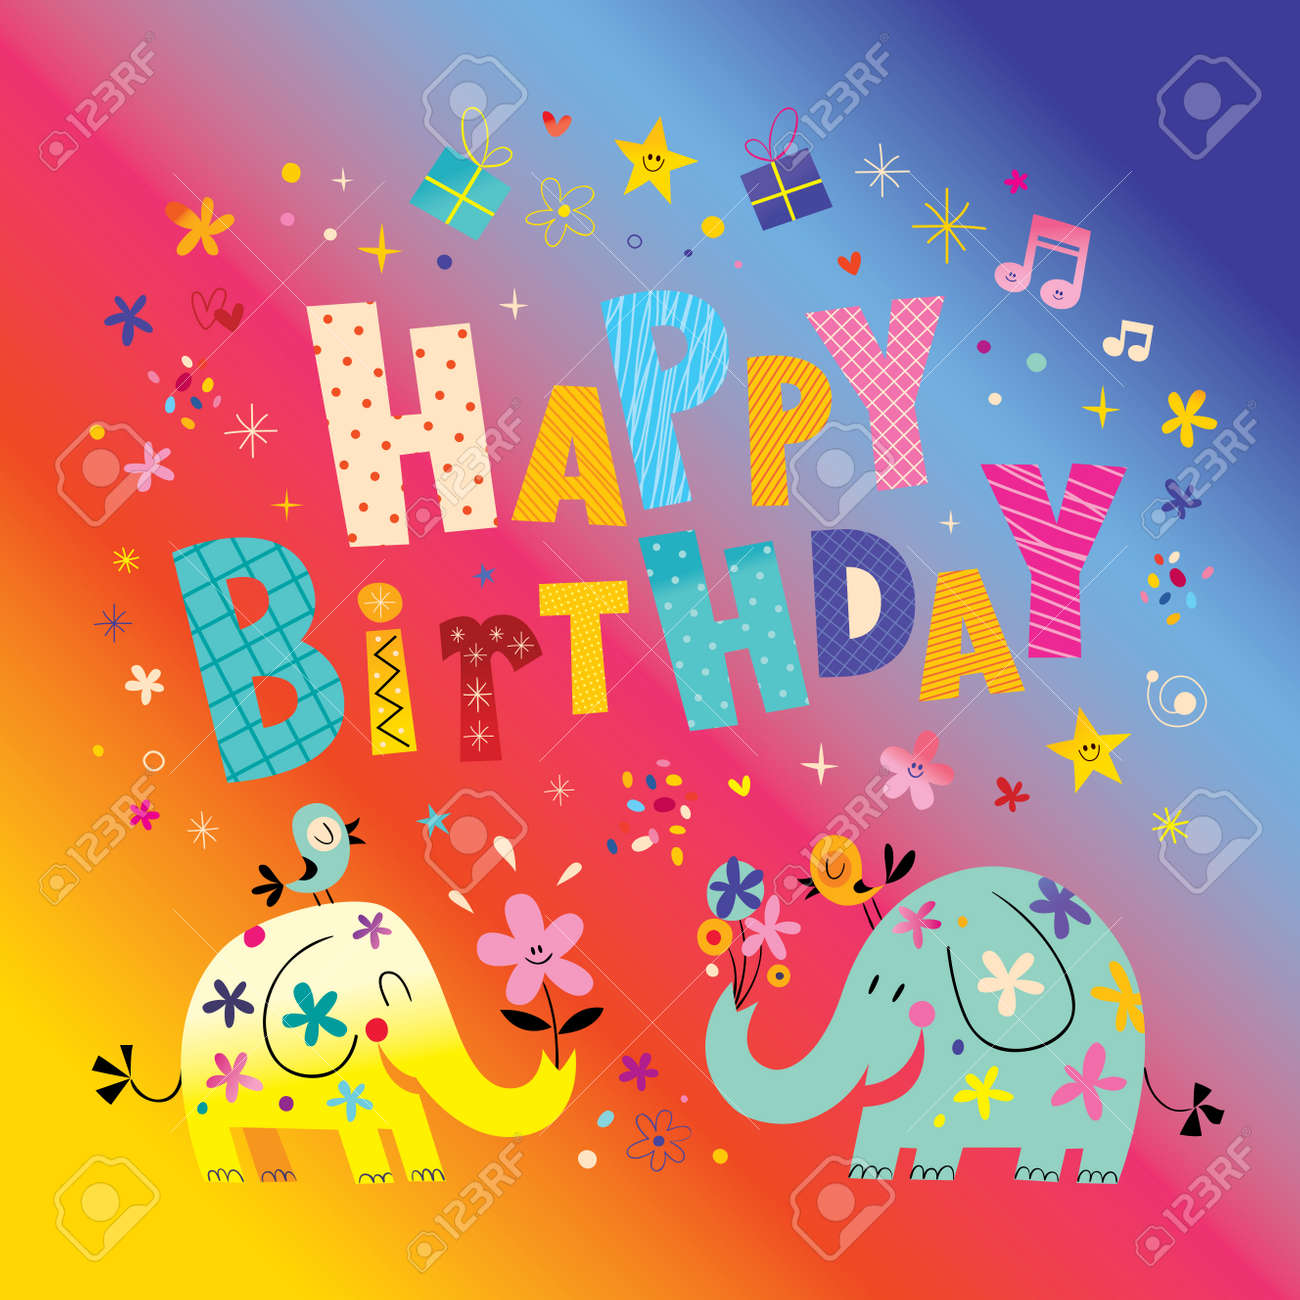 Happy Birthday Greeting Card With Cute Elephants Stock Vector